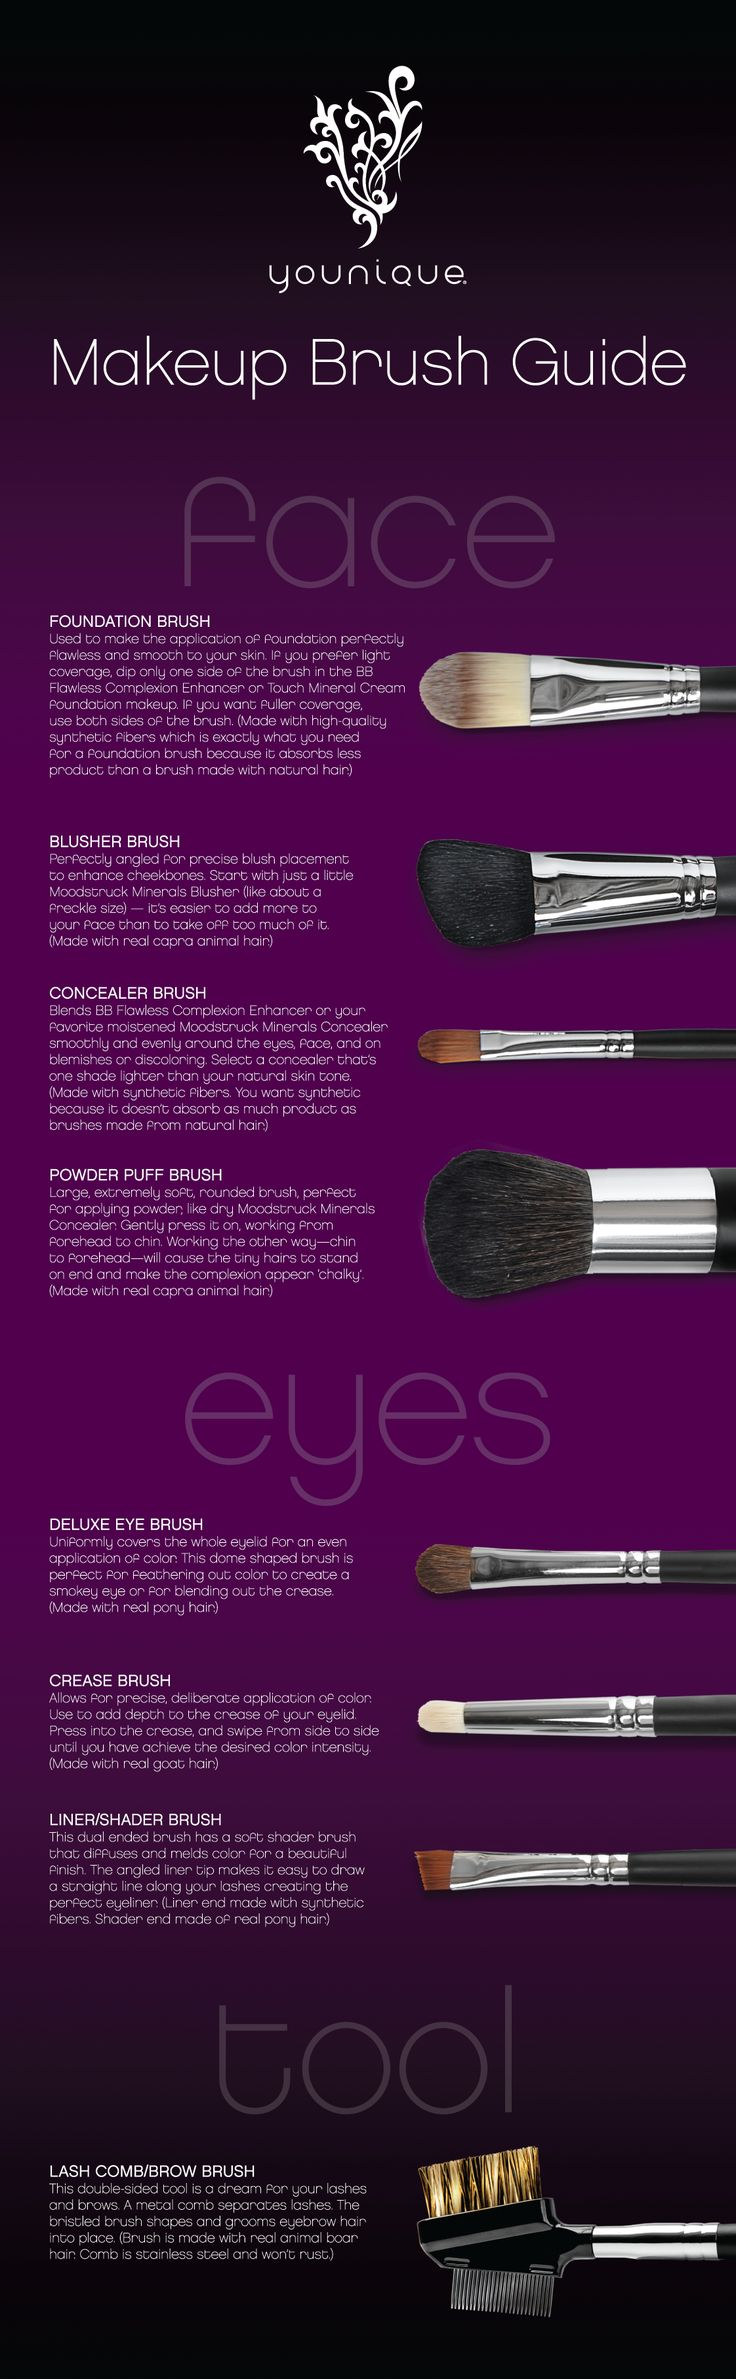 Makeup Brushes Infographic